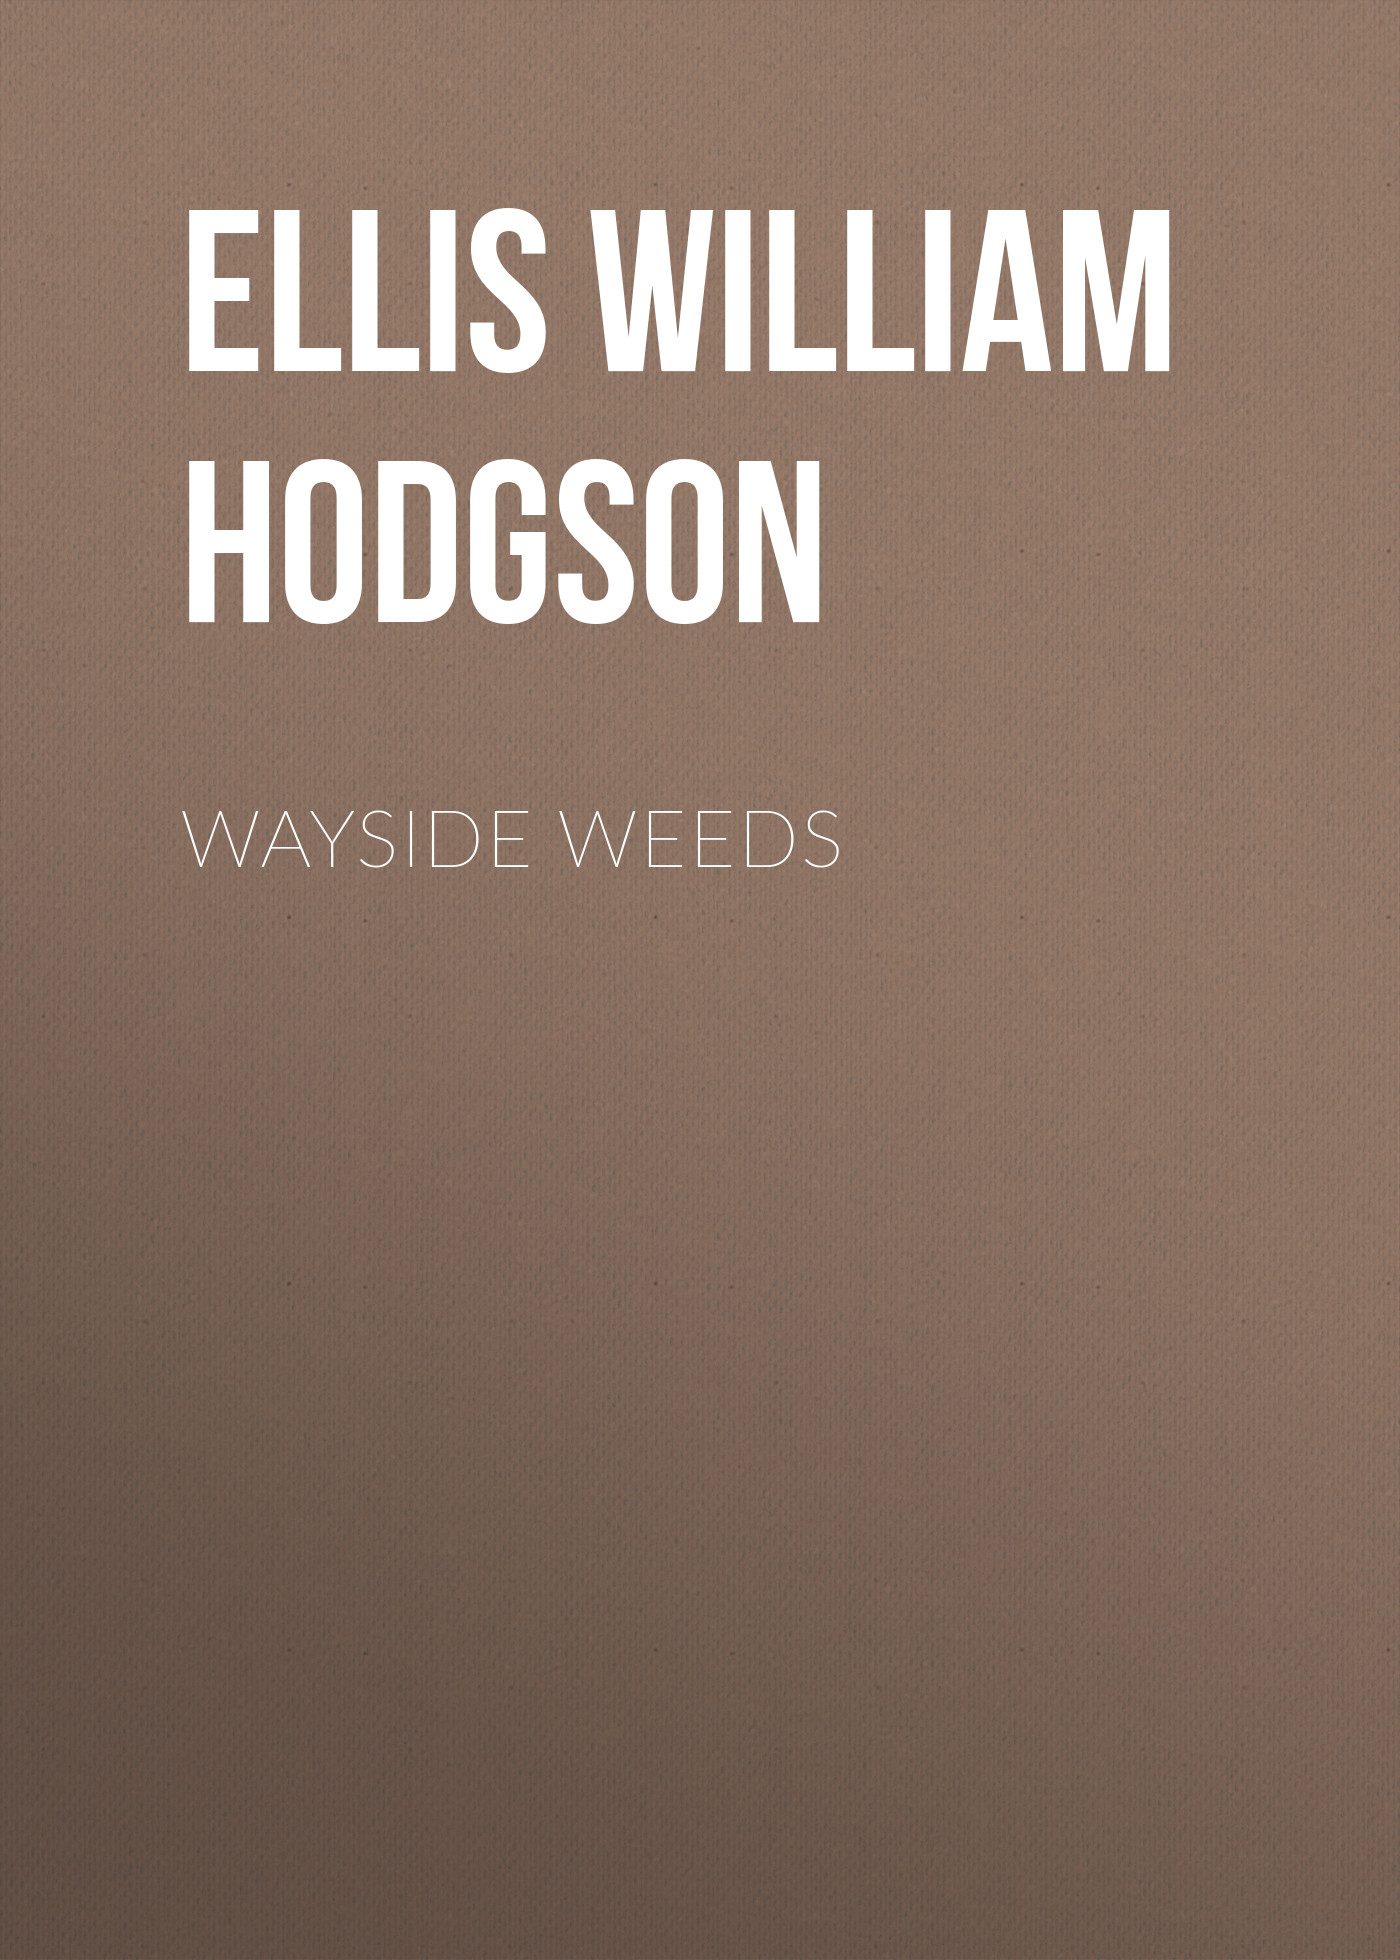 Ellis William Hodgson Wayside Weeds